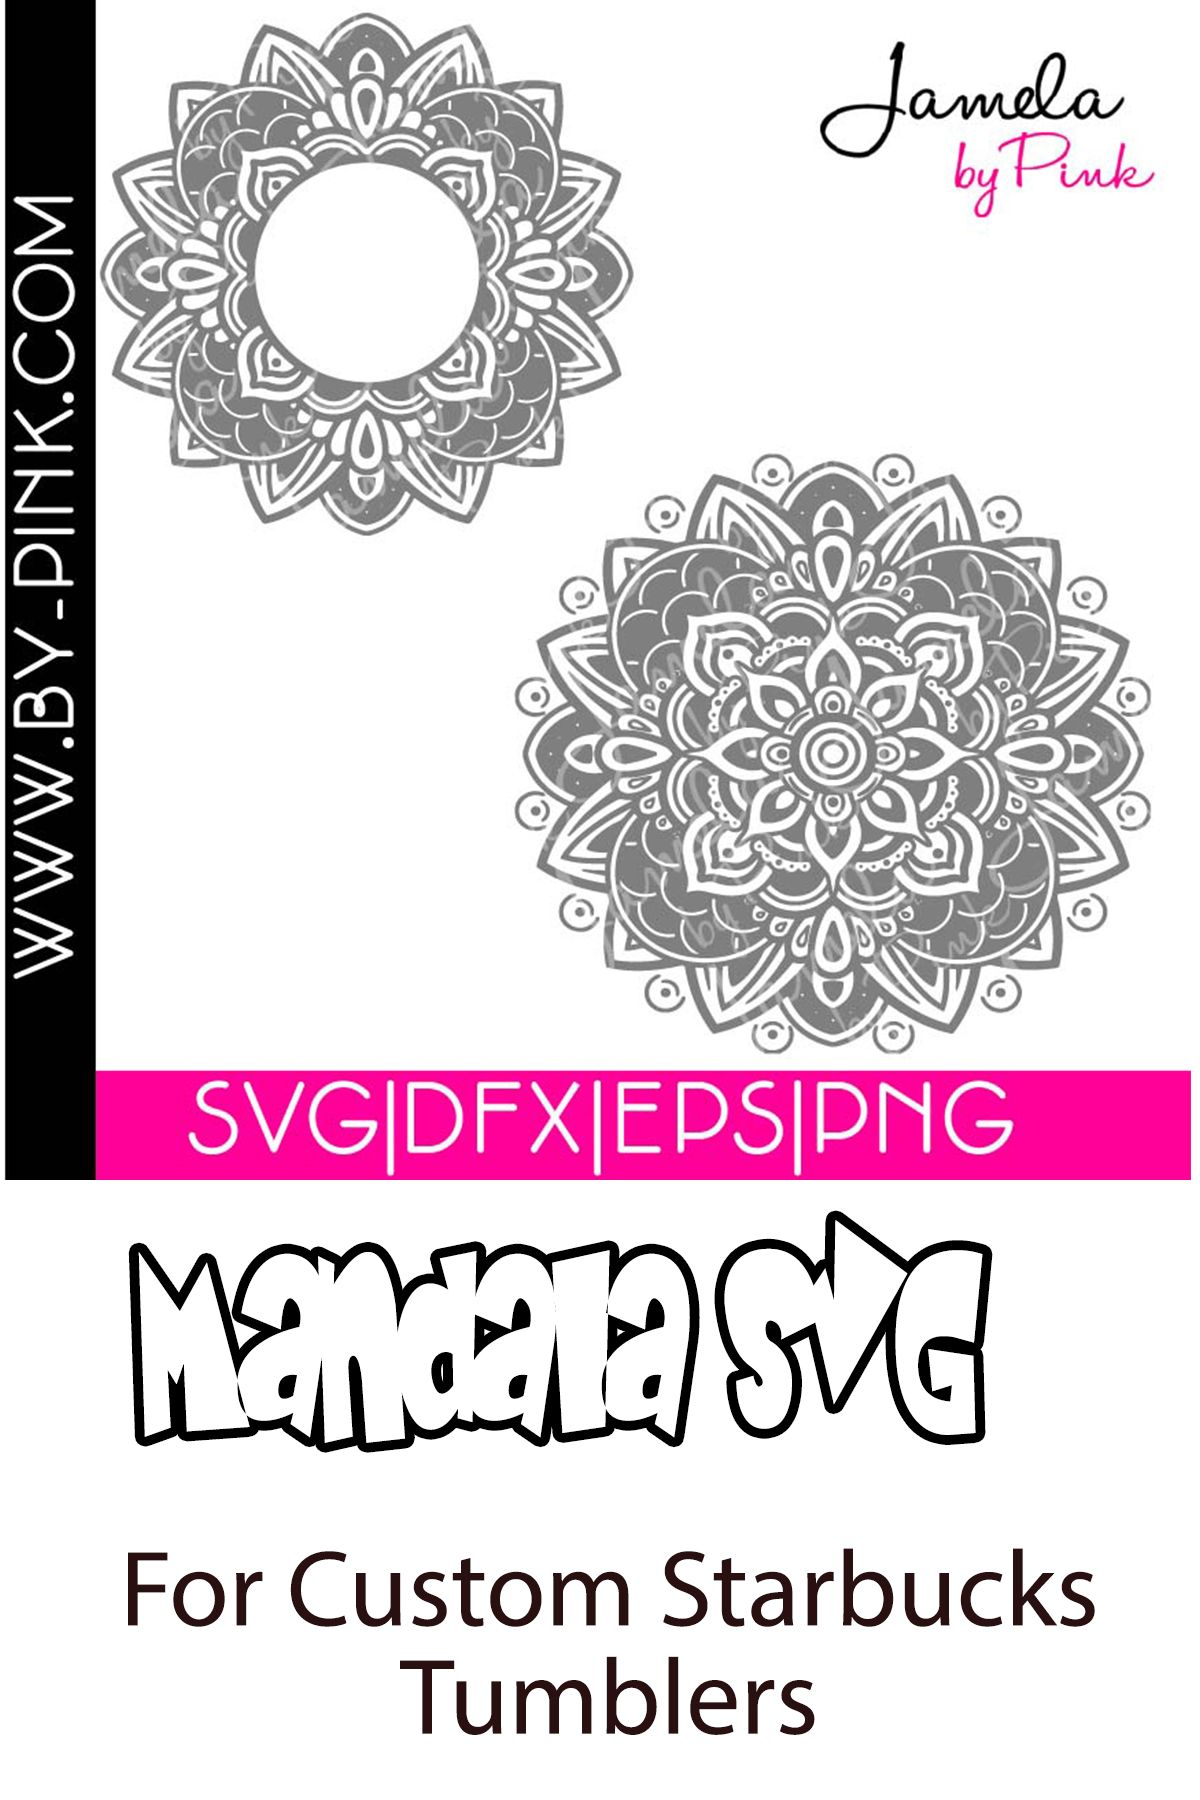 Mandala Svg For A Custom Starbucks Cup In 2020 Custom Starbucks Cup Starbucks Cups Starbucks